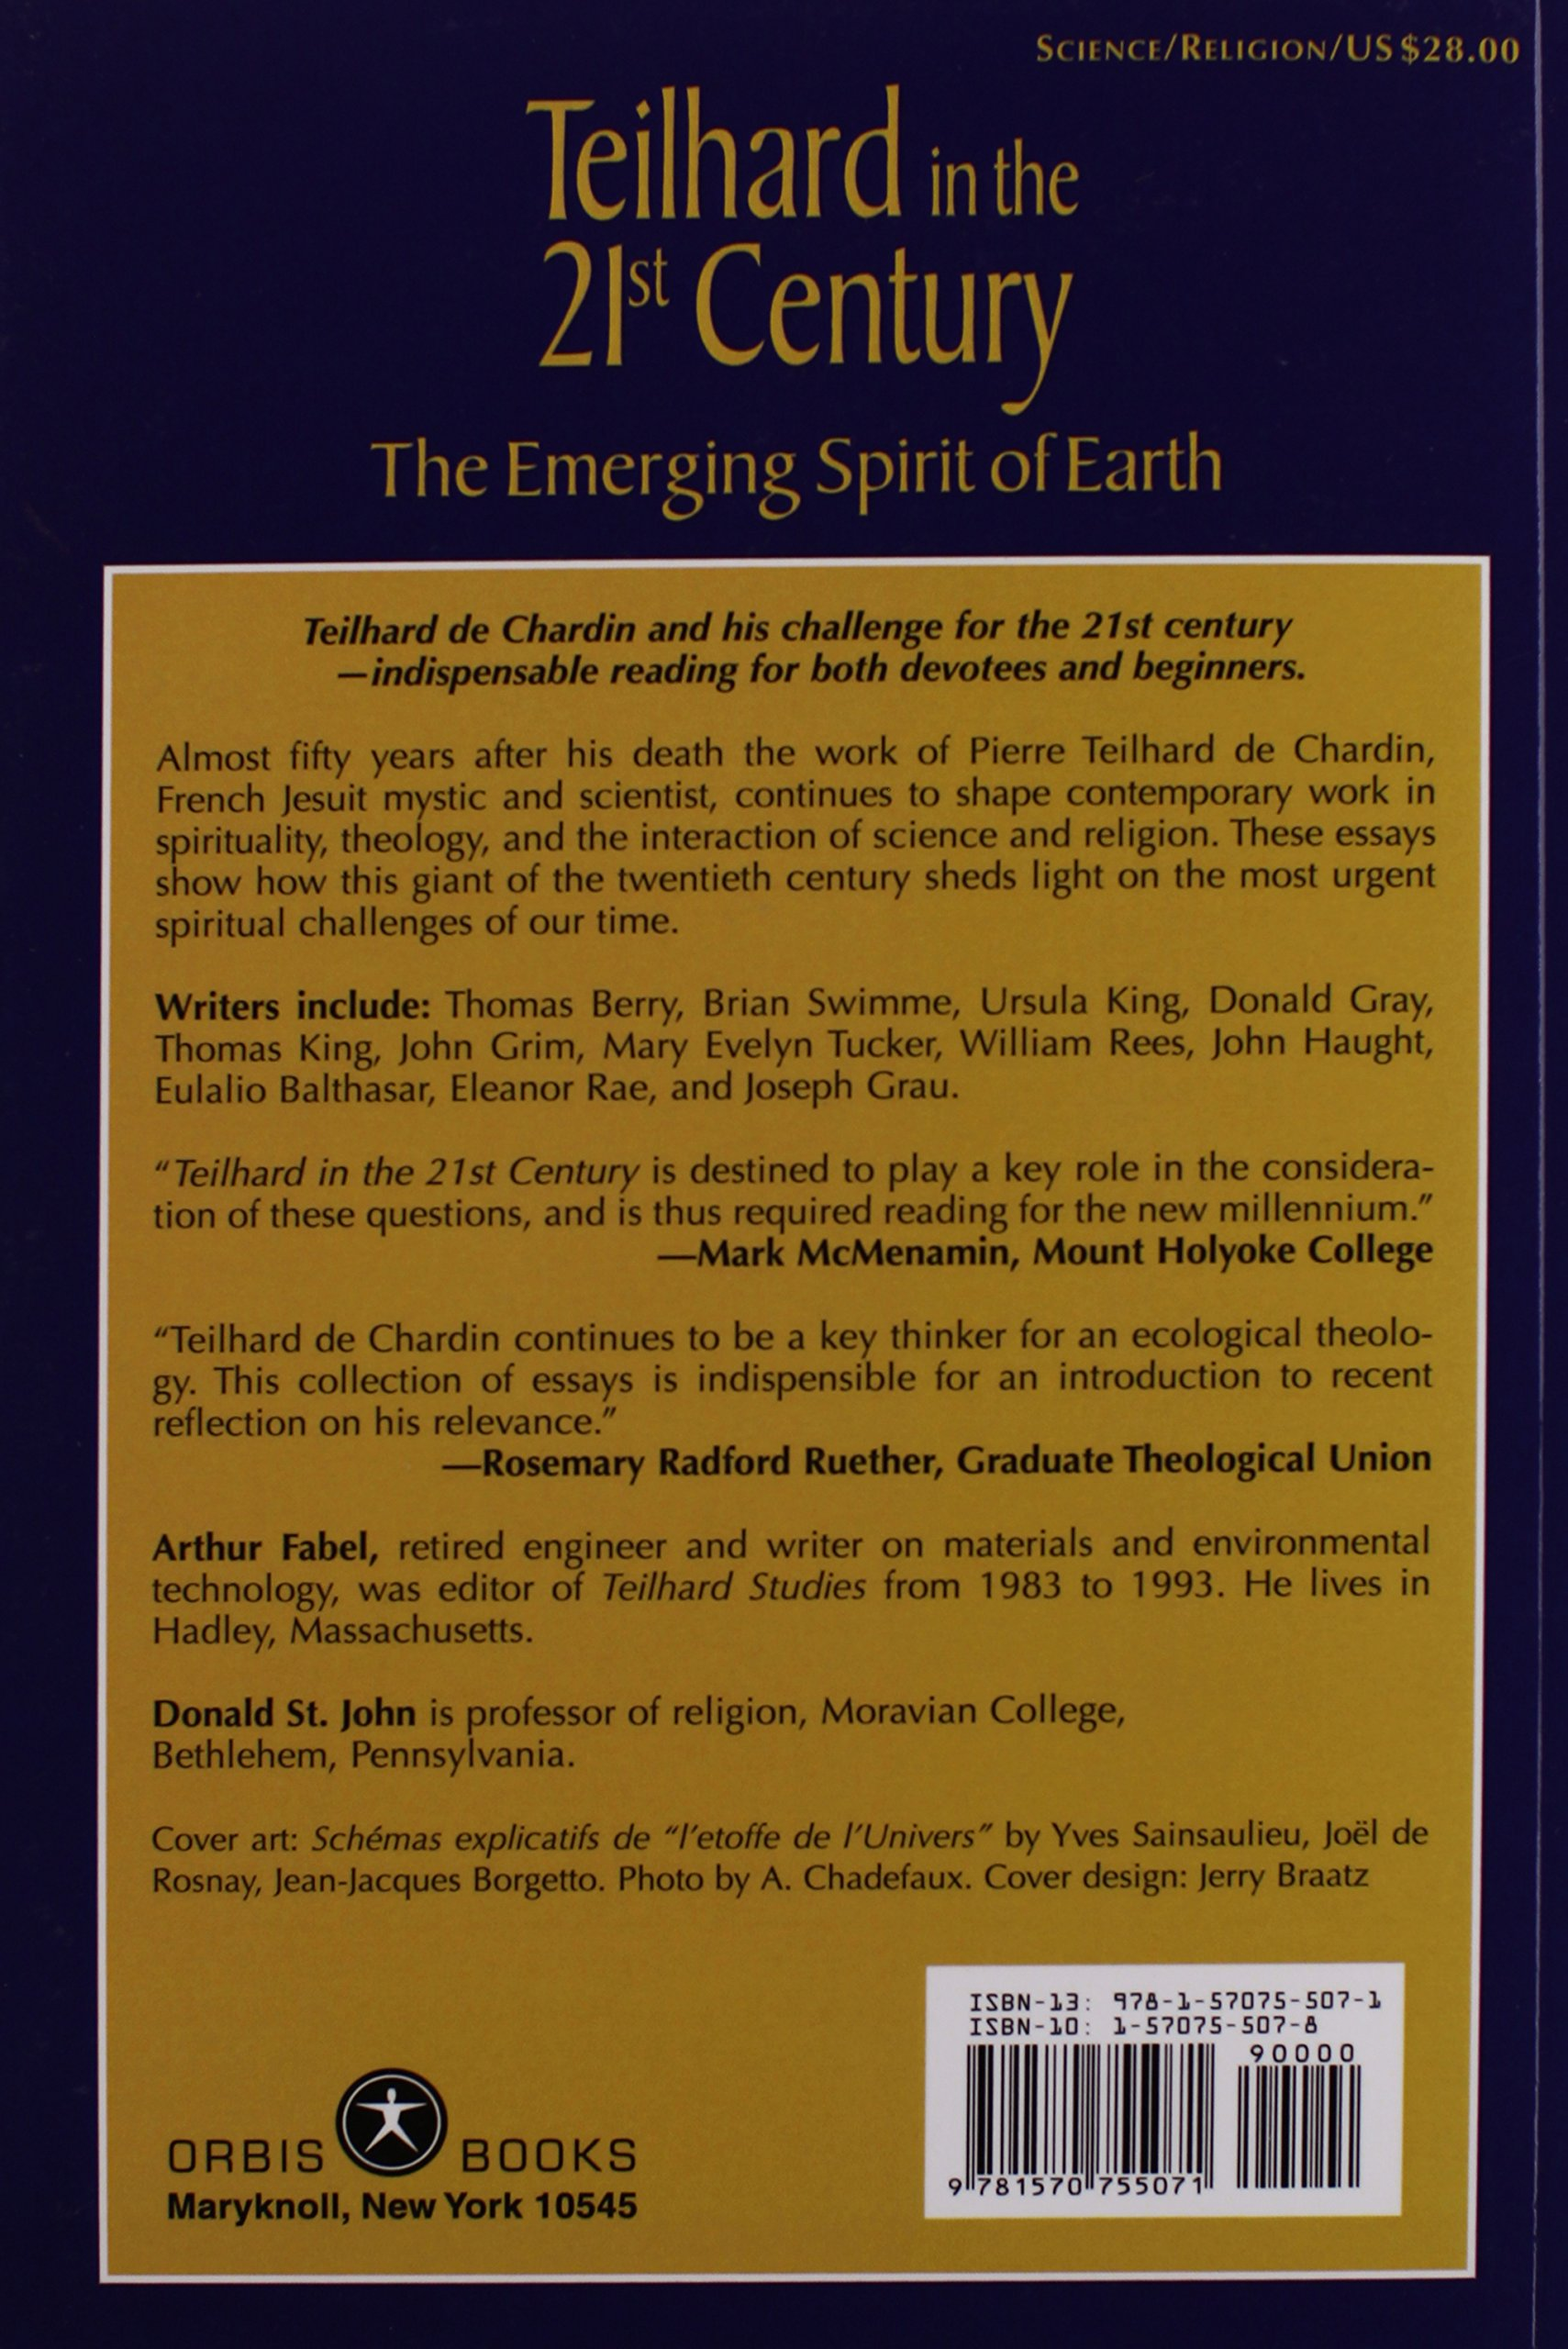 teilhard in the st century the emerging spirit of earth arthur teilhard in the 21st century the emerging spirit of earth arthur fabel donald st john 9781570755071 com books